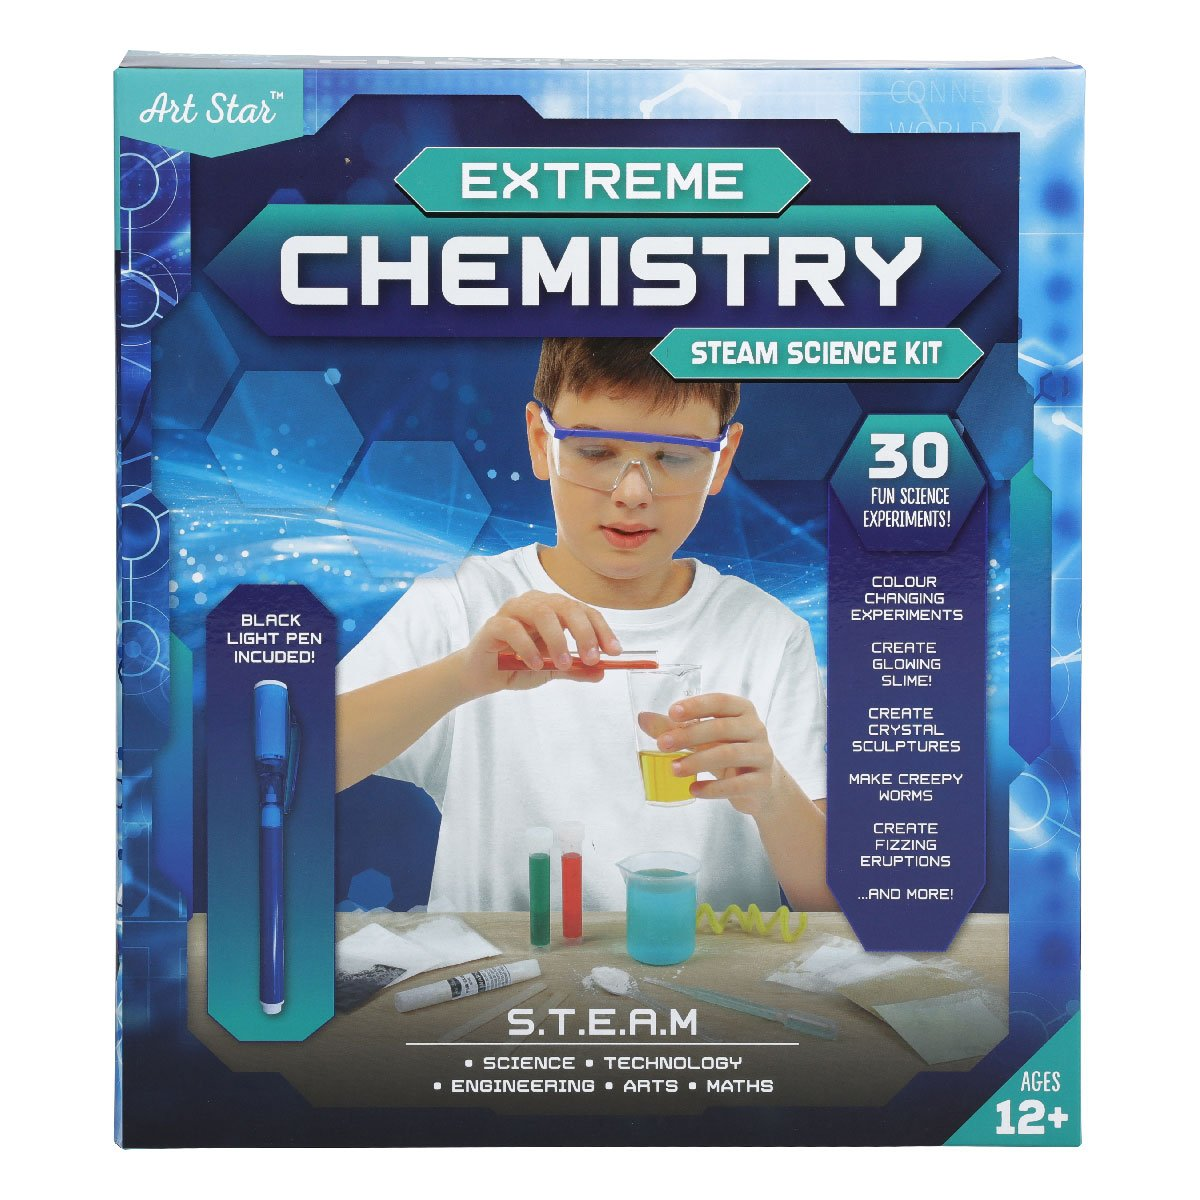 Image of Art Star Extreme Chemistry STEAM Science Kit